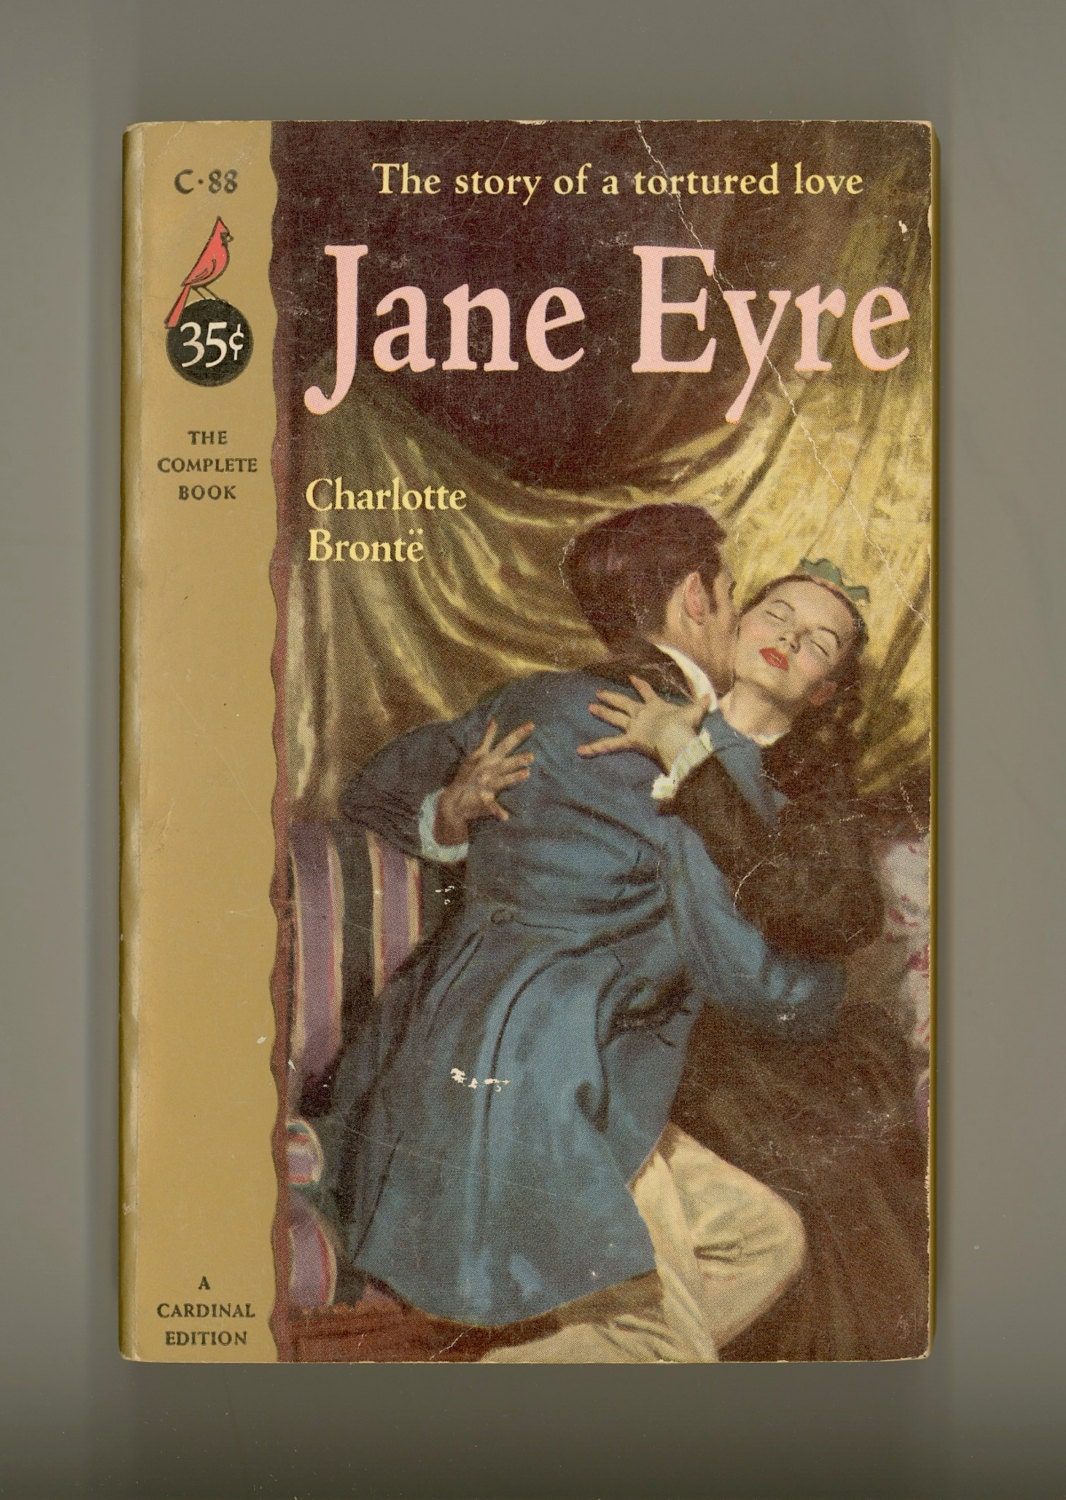 a sense of feminism in jane eyre by charlotte bronte Jane eyre [charlotte bronte] what elevates jane eyre is bronte's remarkable brontë builds a mystery into a story of class distinction and subtle feminism.